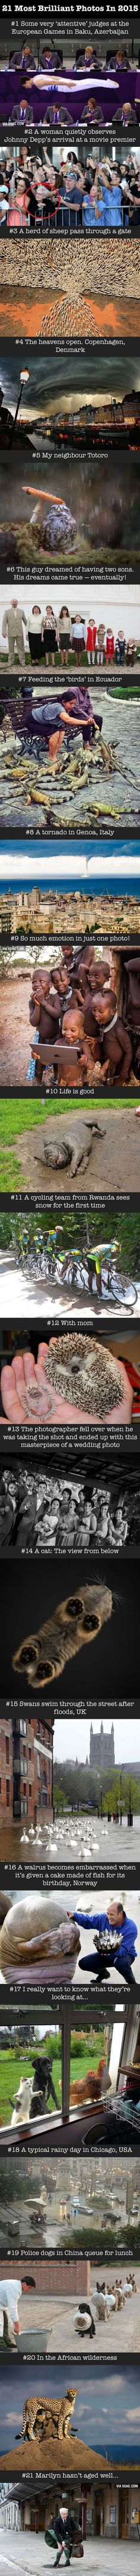 21 Brilliant Photographs Which Hugely Impressed The Internet In 2015 #photography #9gag